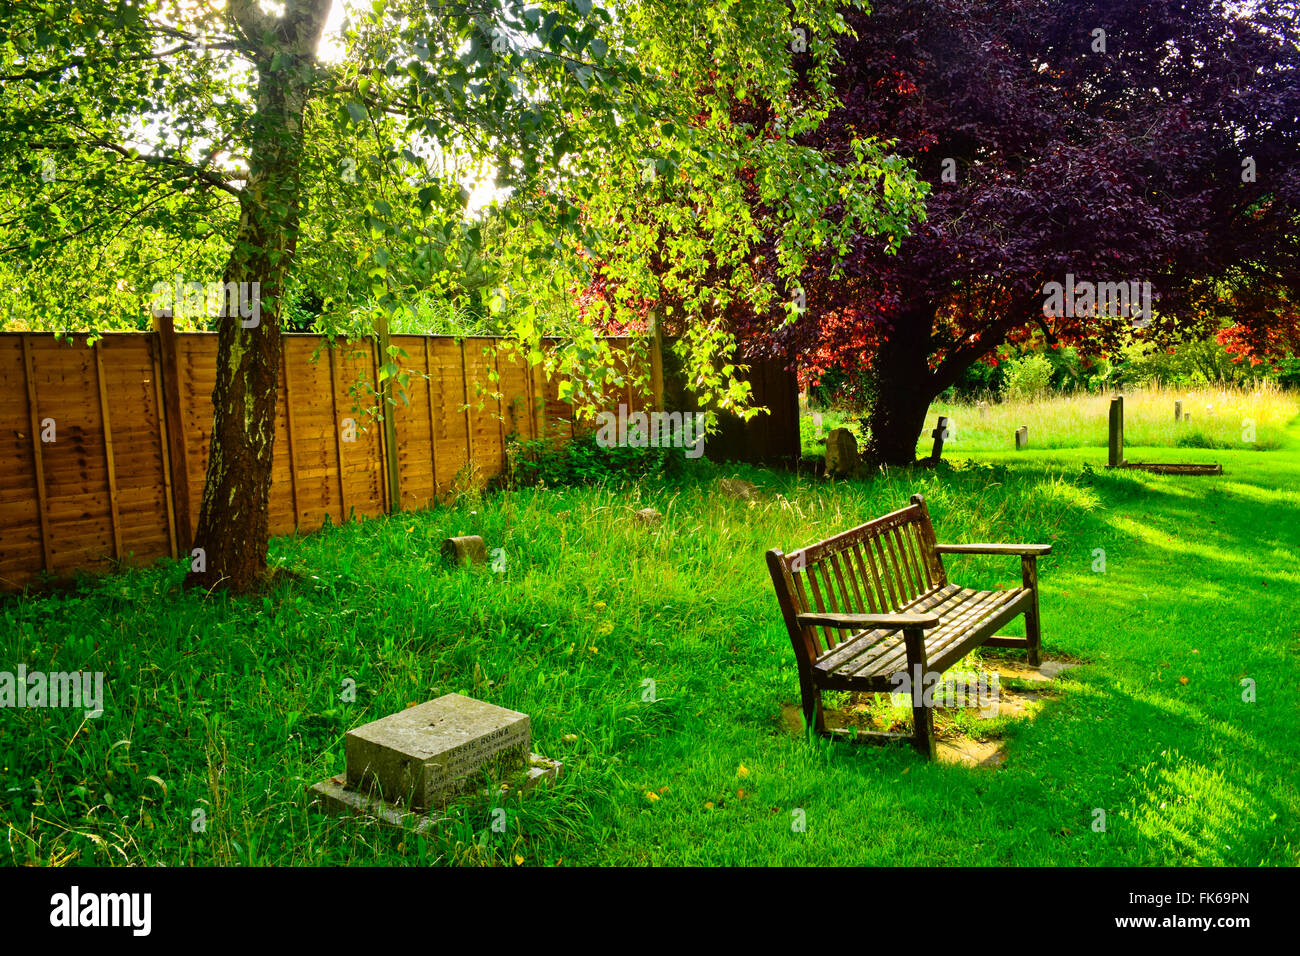 A bench in a park. London, United Kingdom. Stock Photo